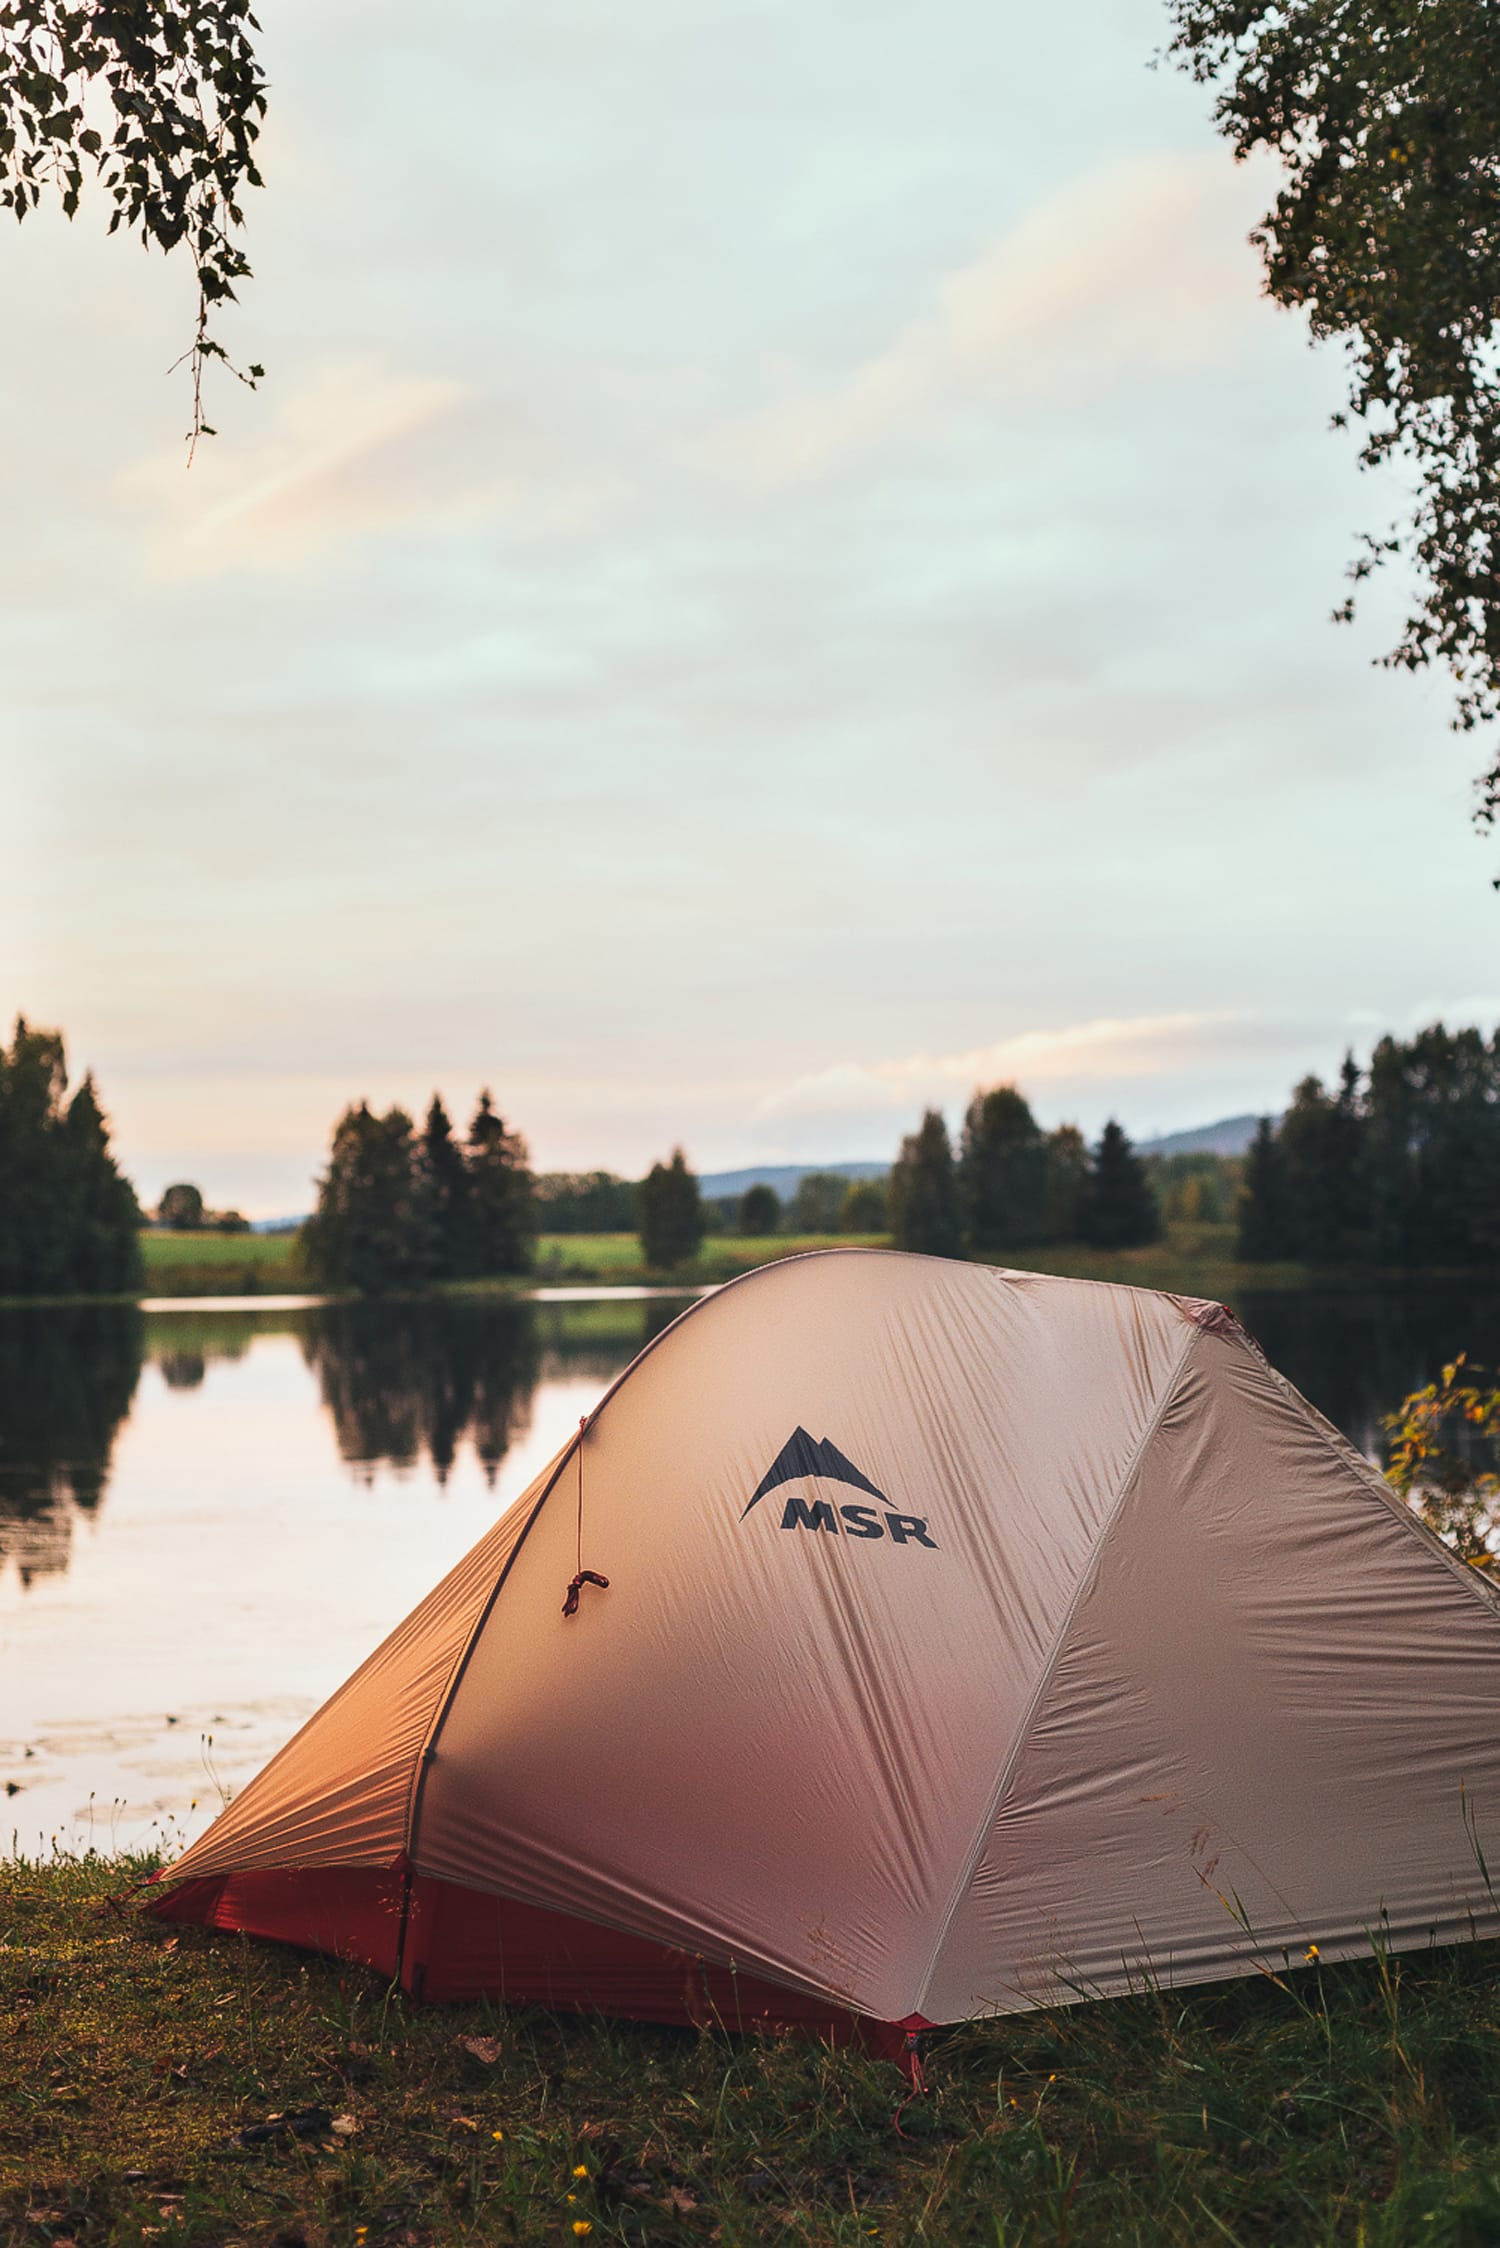 MSR tent pitched by a lake